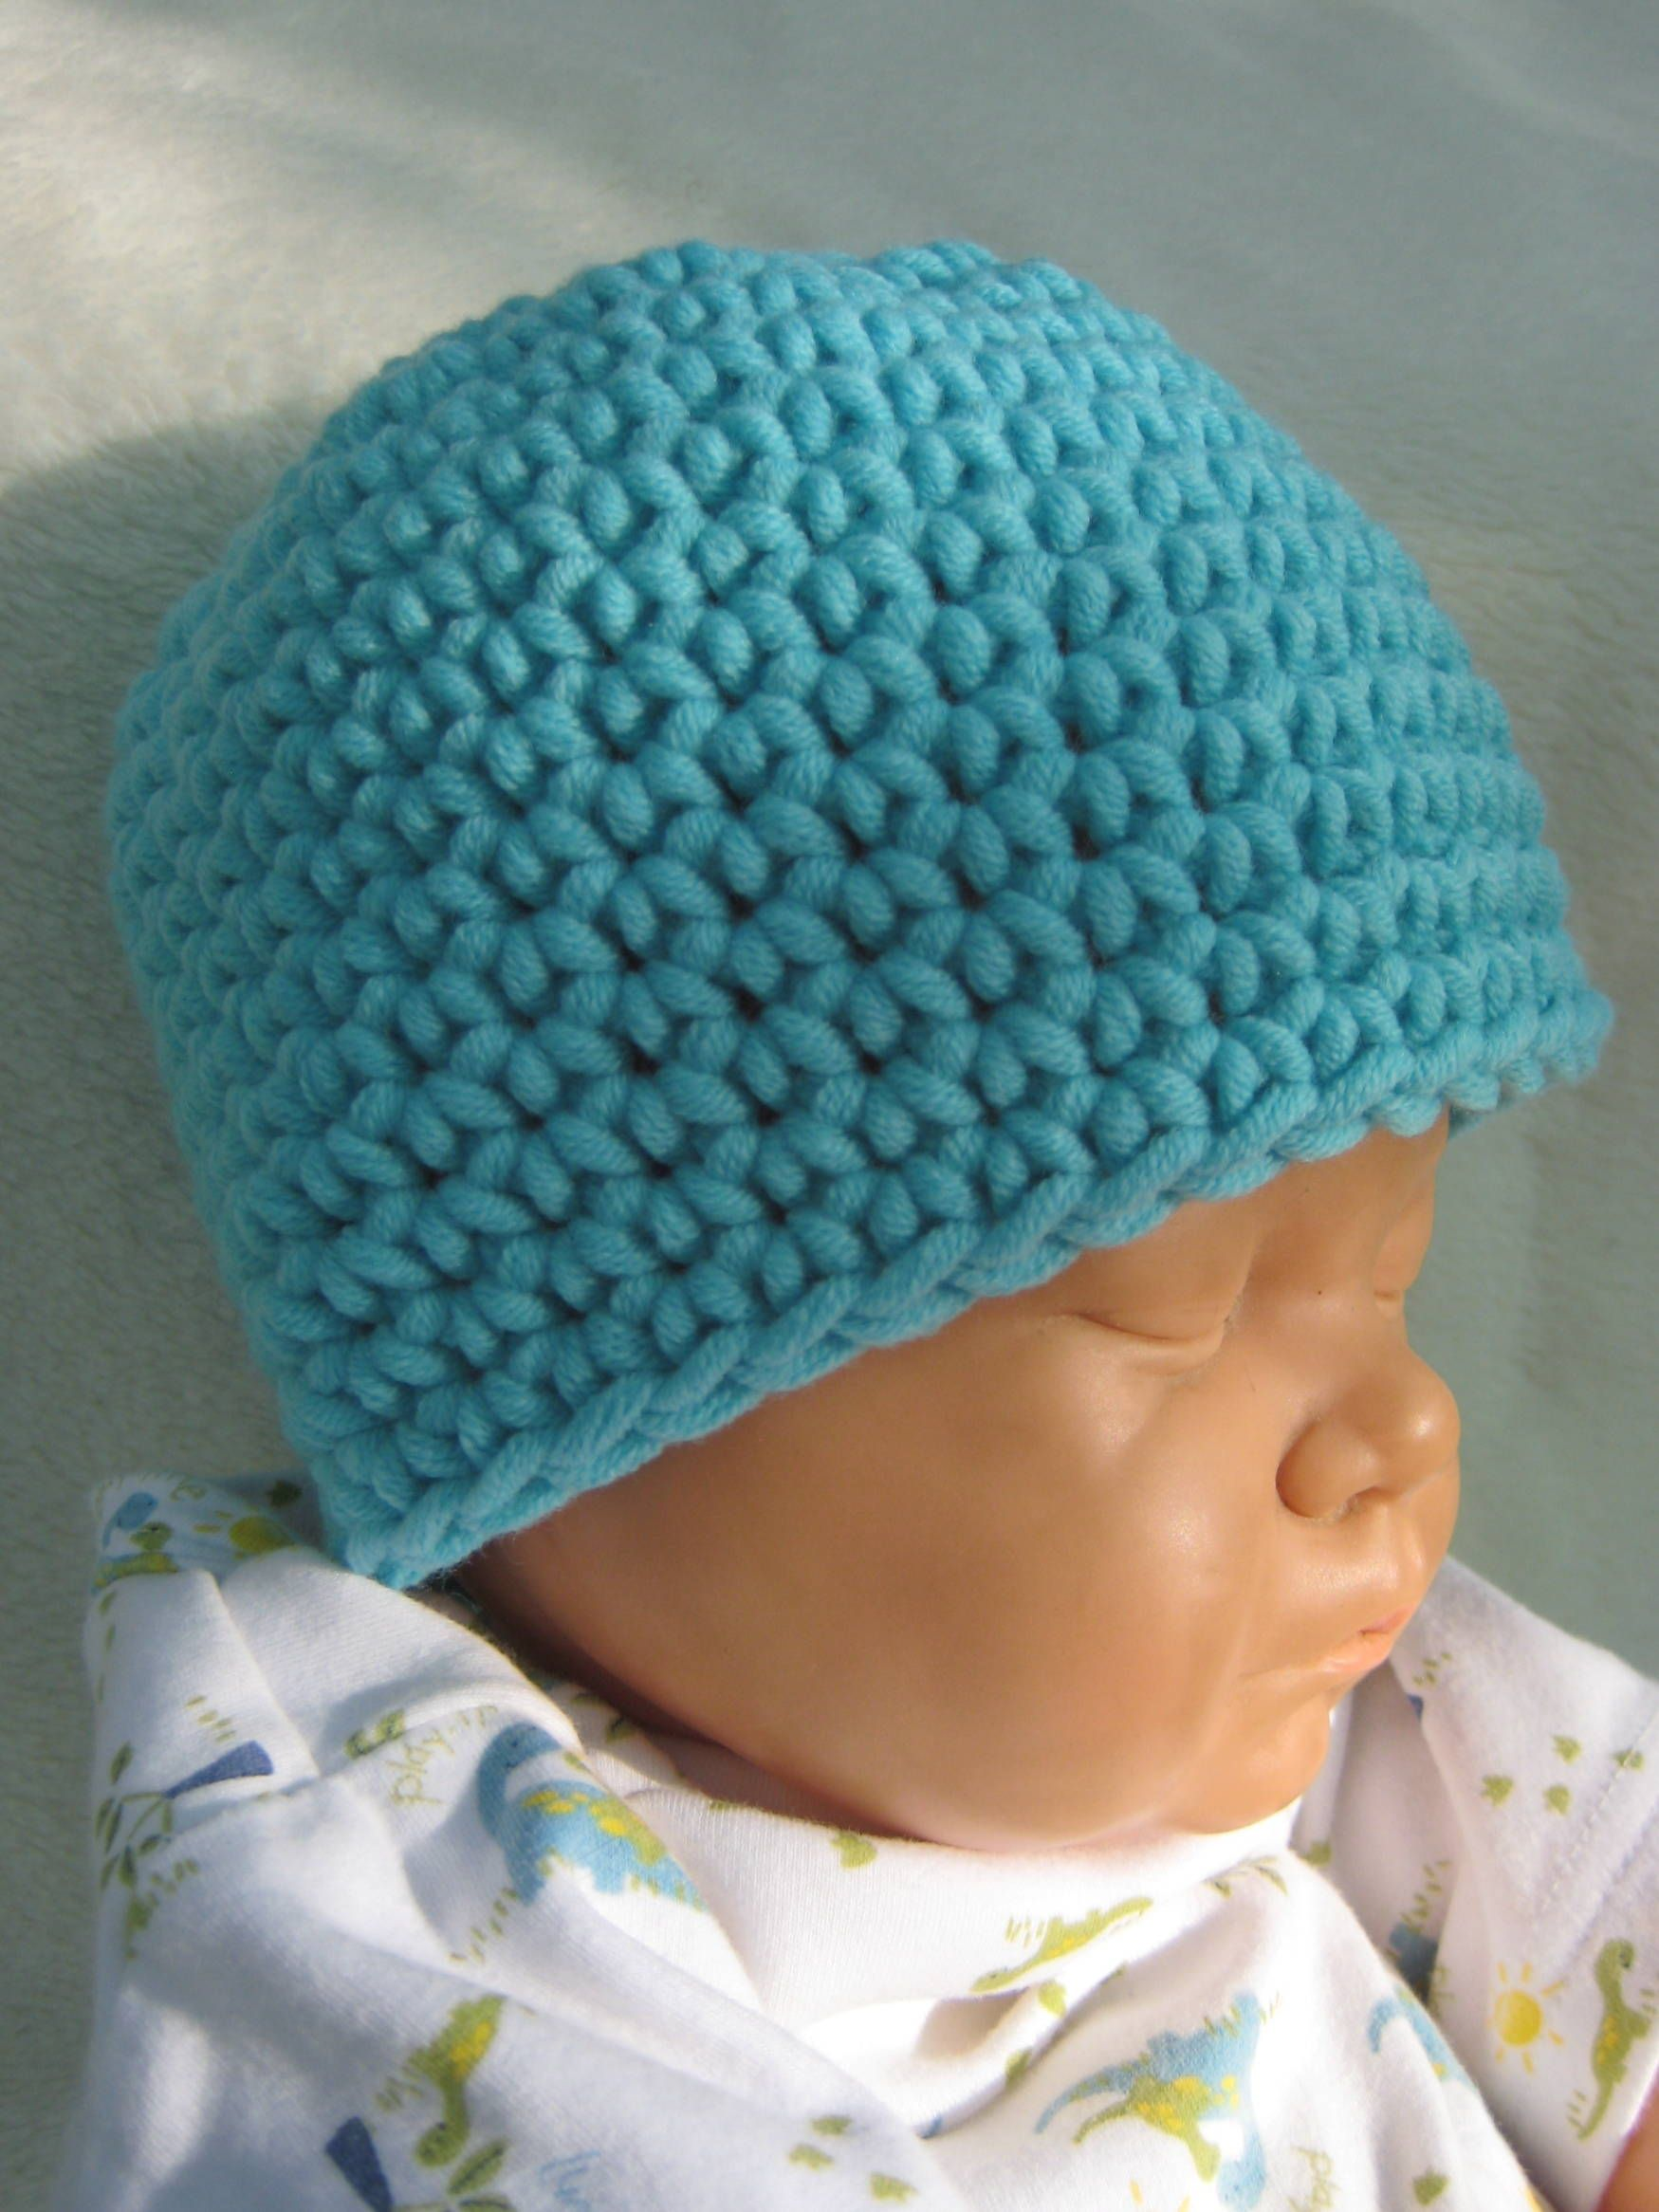 Crochet a Beanie for Your Baby with This Easy, Free Pattern | Gorros ...